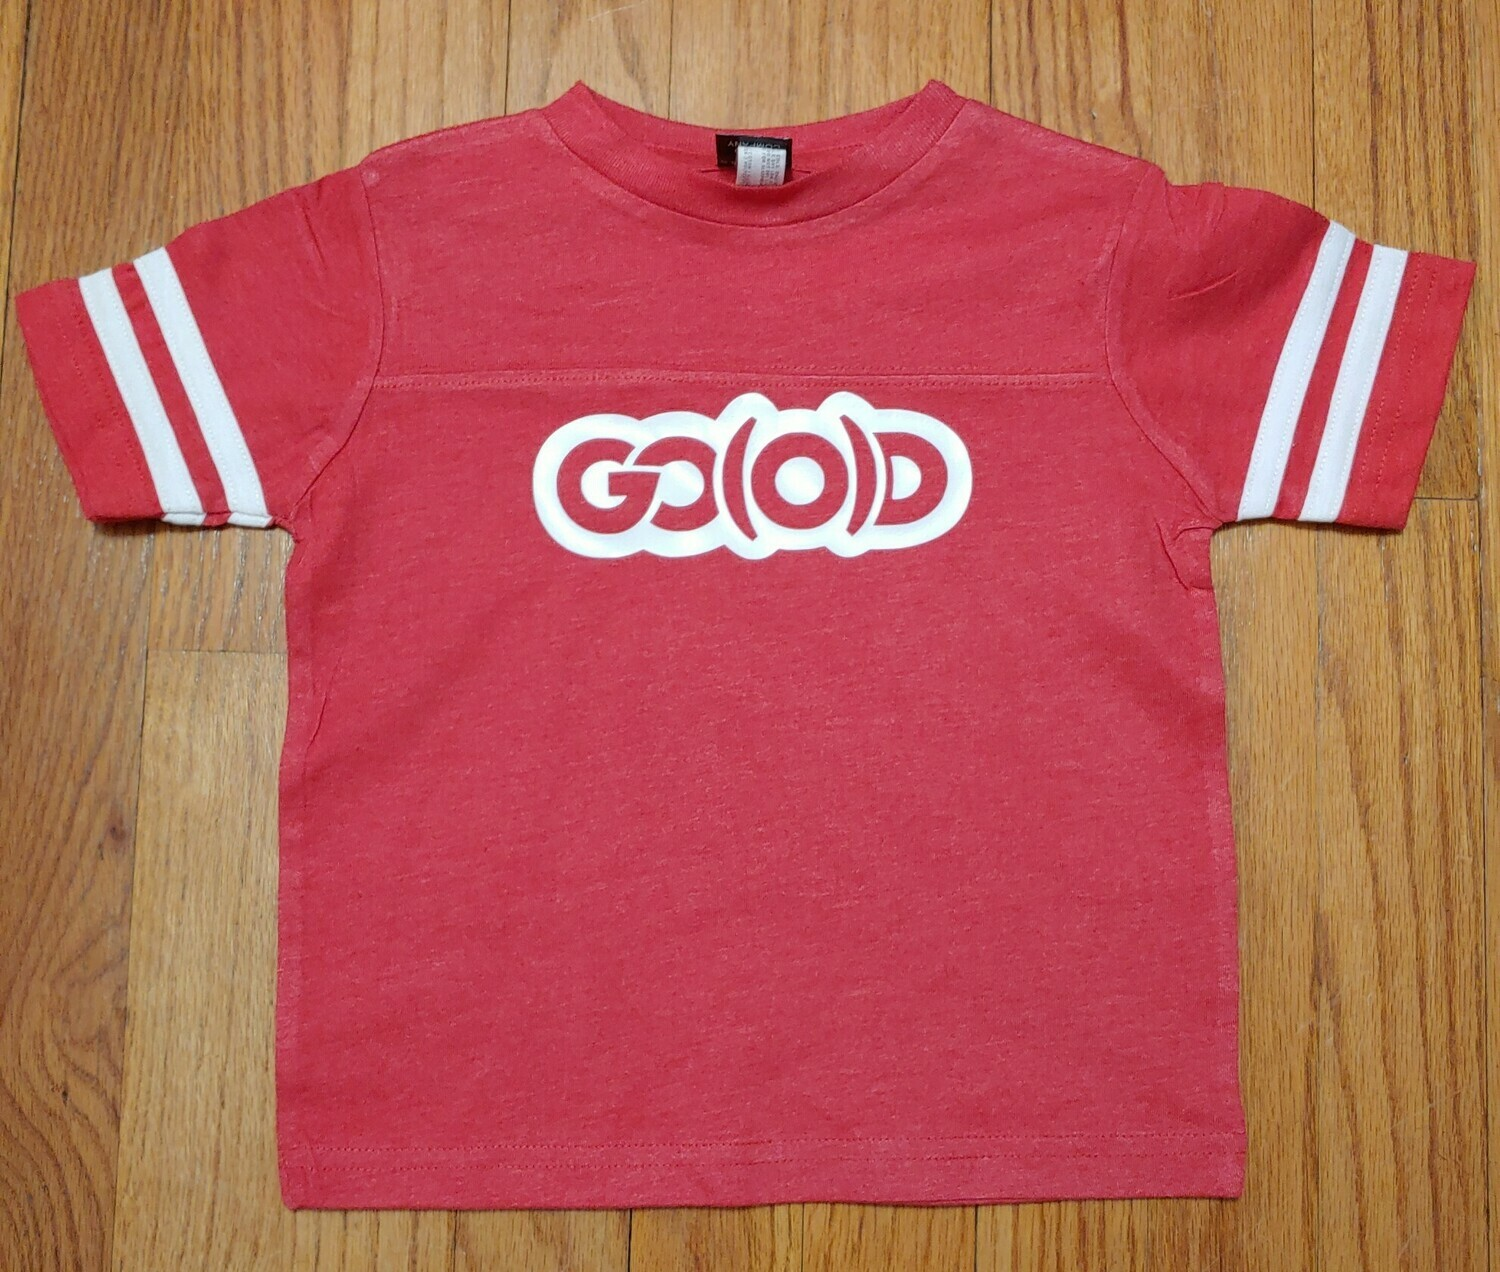 GO(O)D Toddler Fine Jersey Tee-red/white